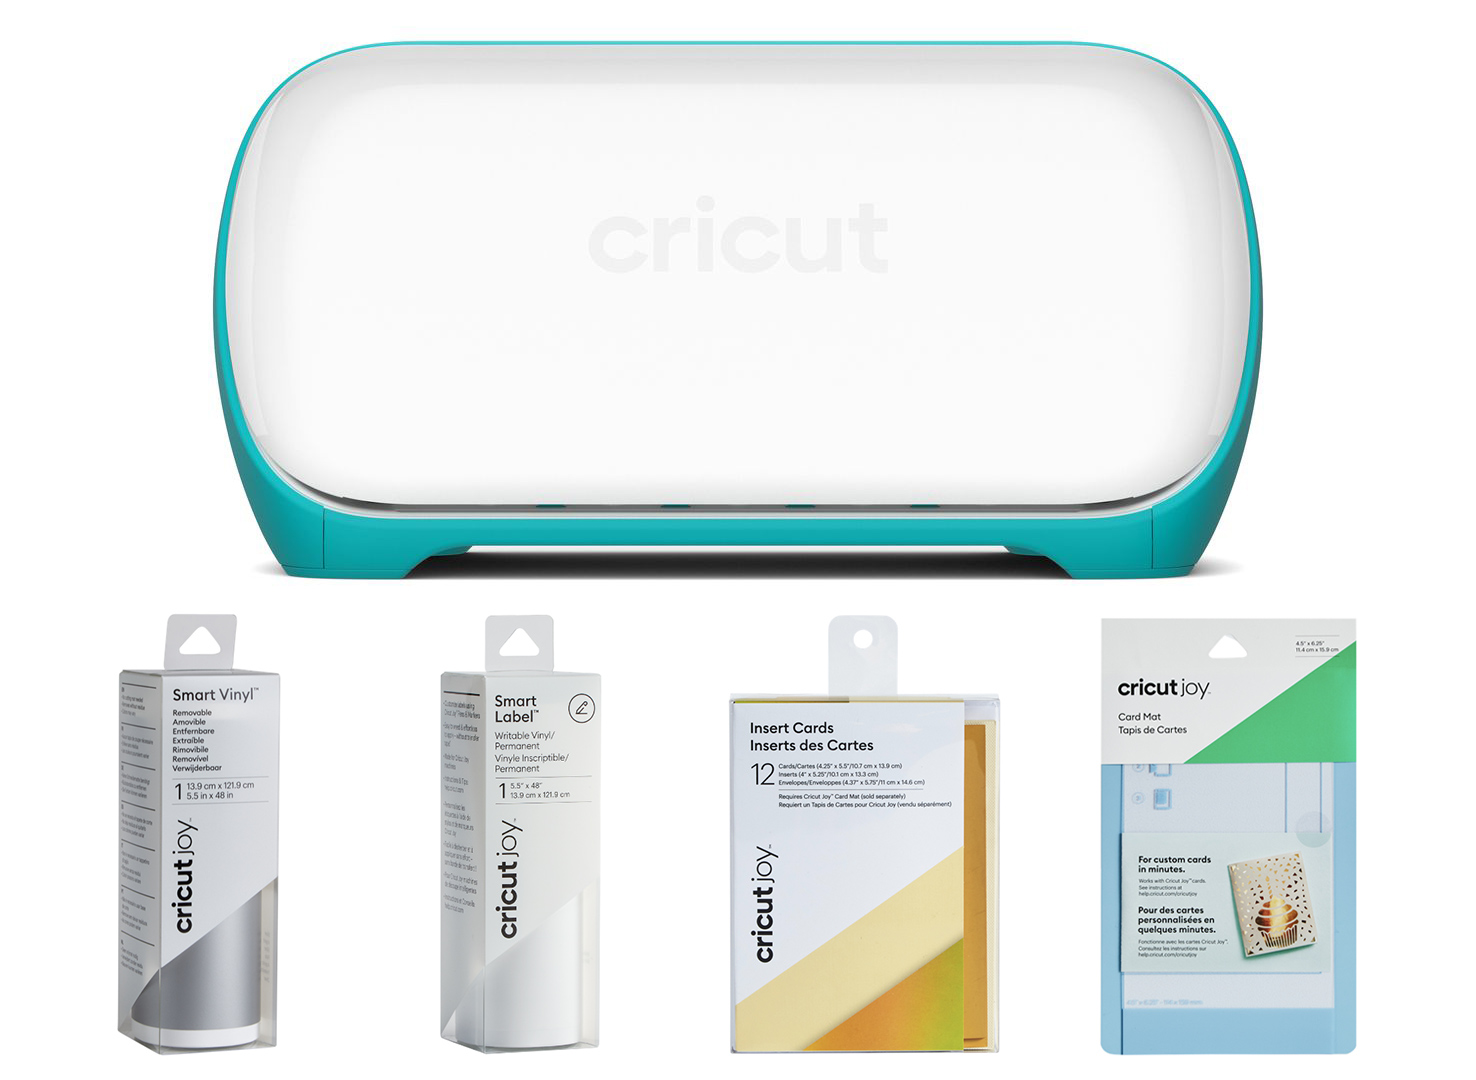 Cricut Joy Starter Kit Materiali